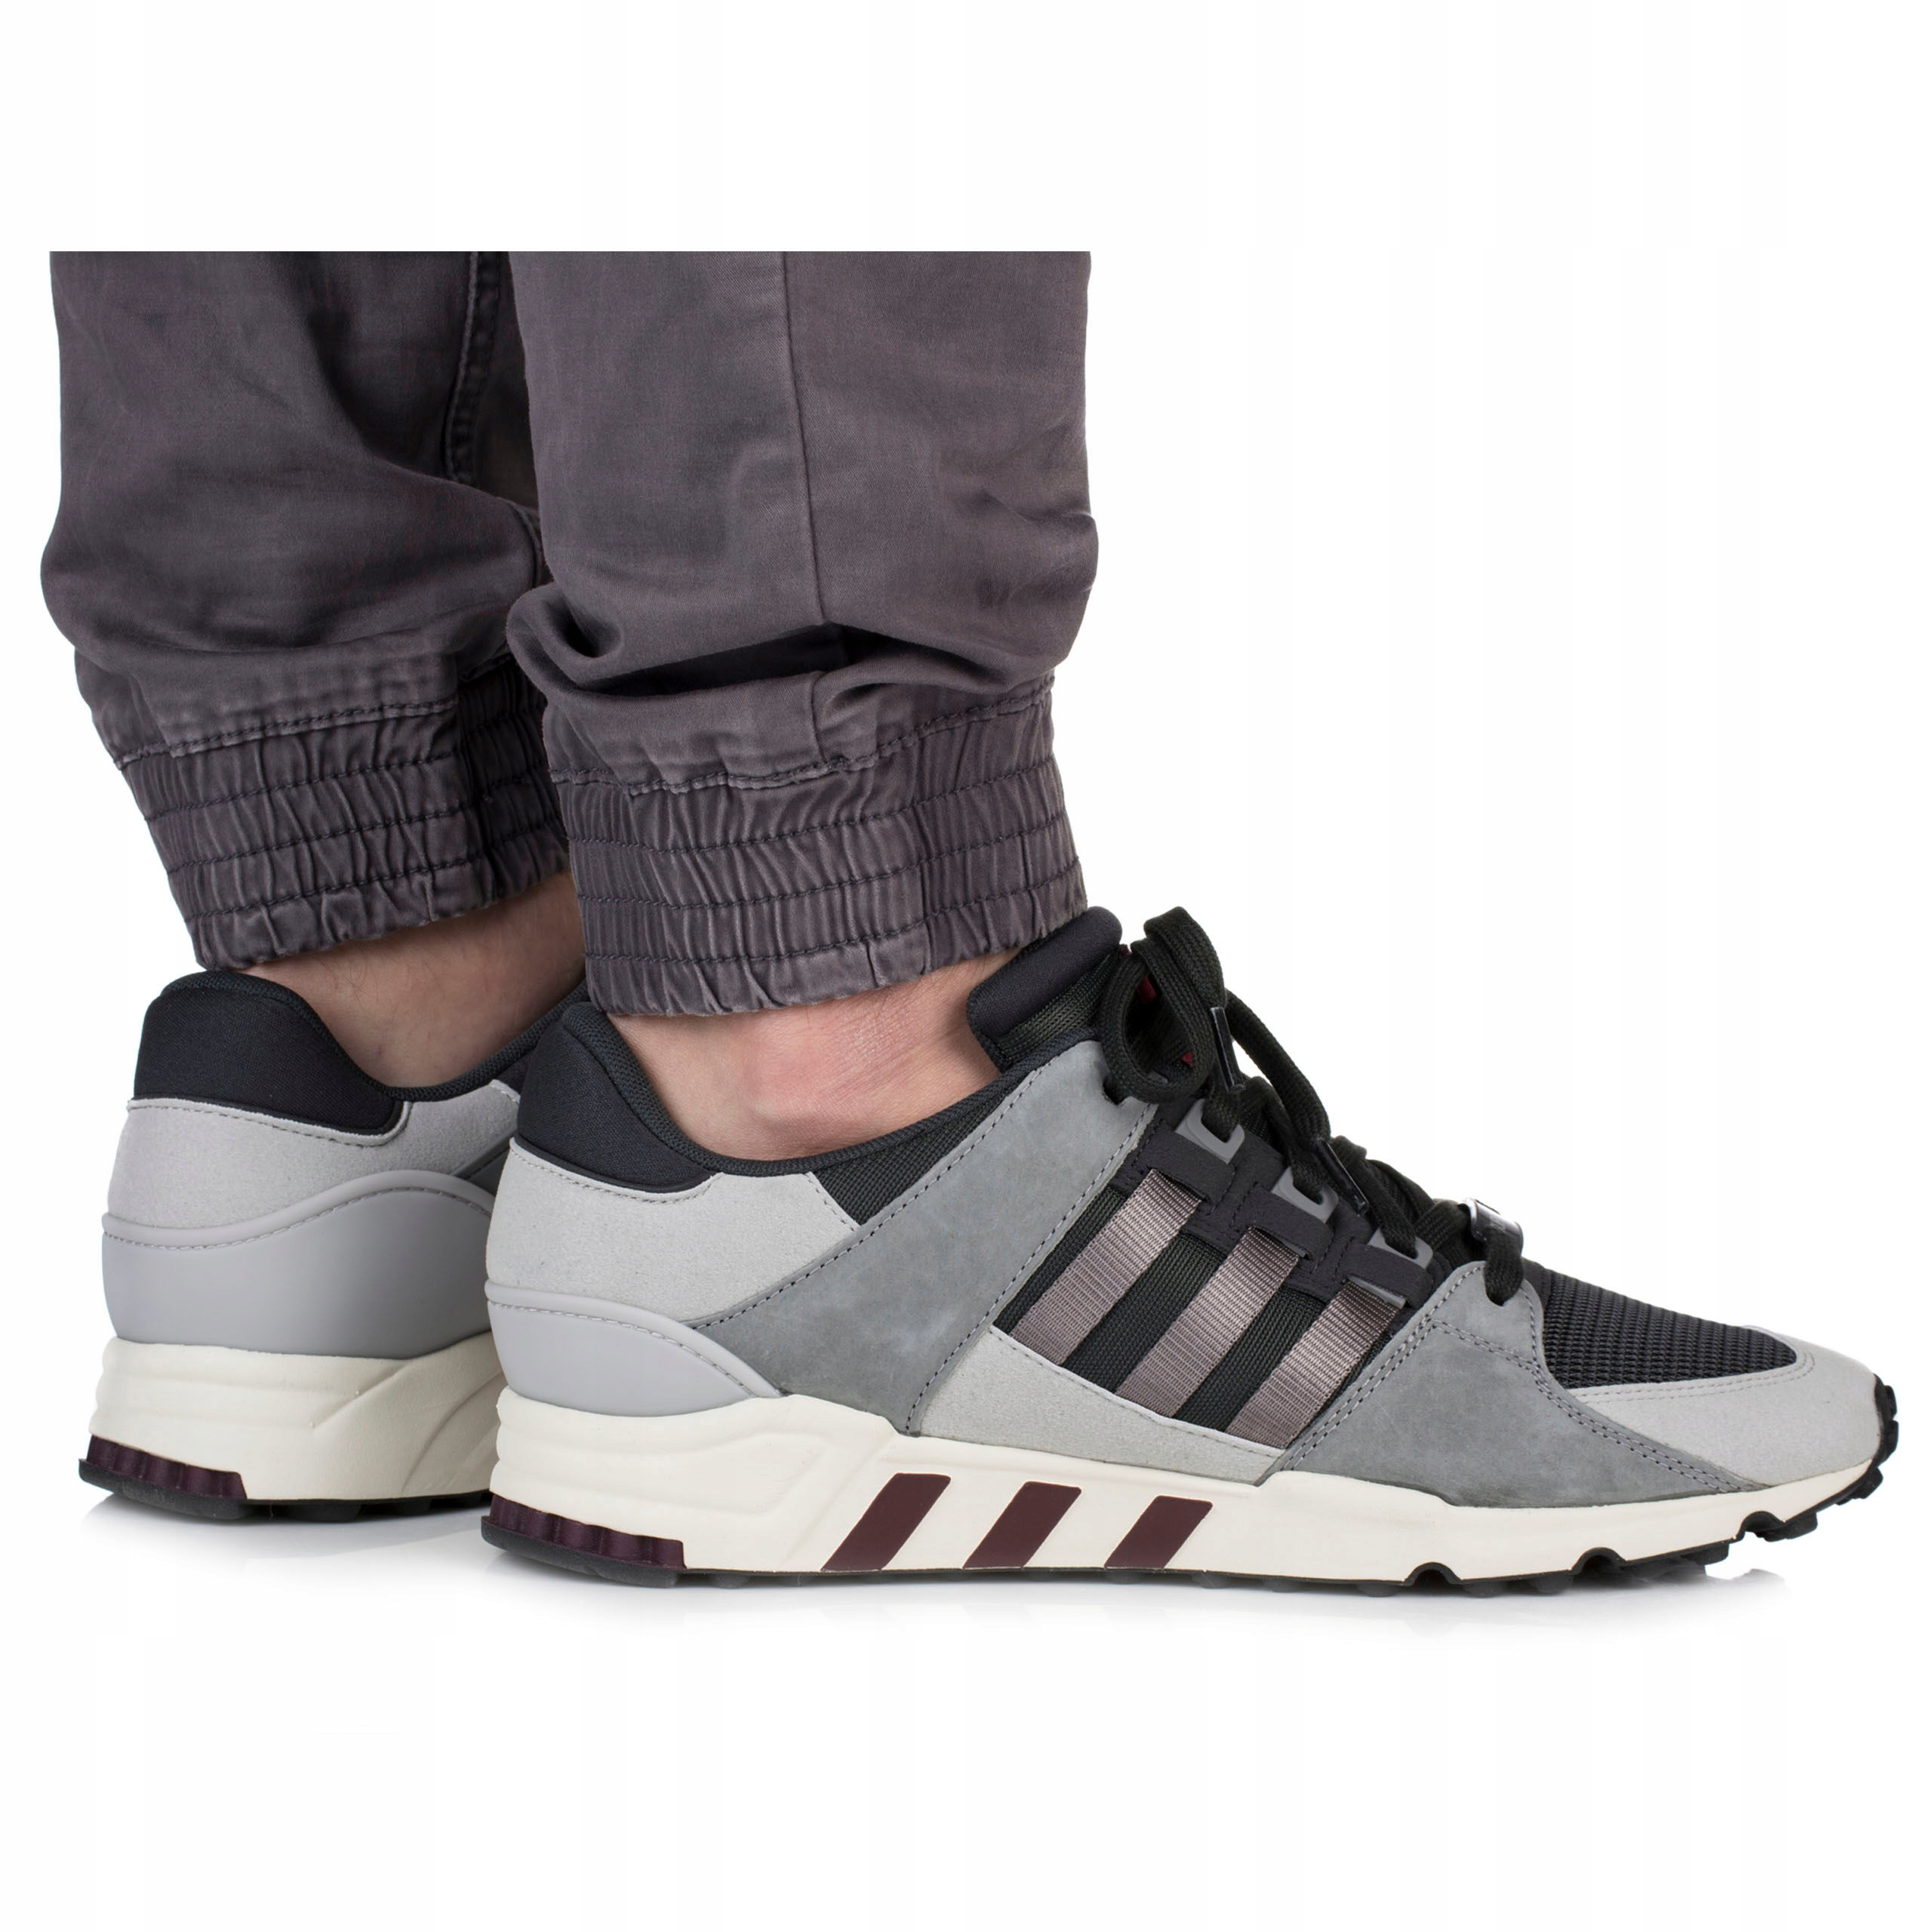 buy popular 43a4b 393ba Buty męskie adidas Equipment Support EQT CQ2420 (7201254367)